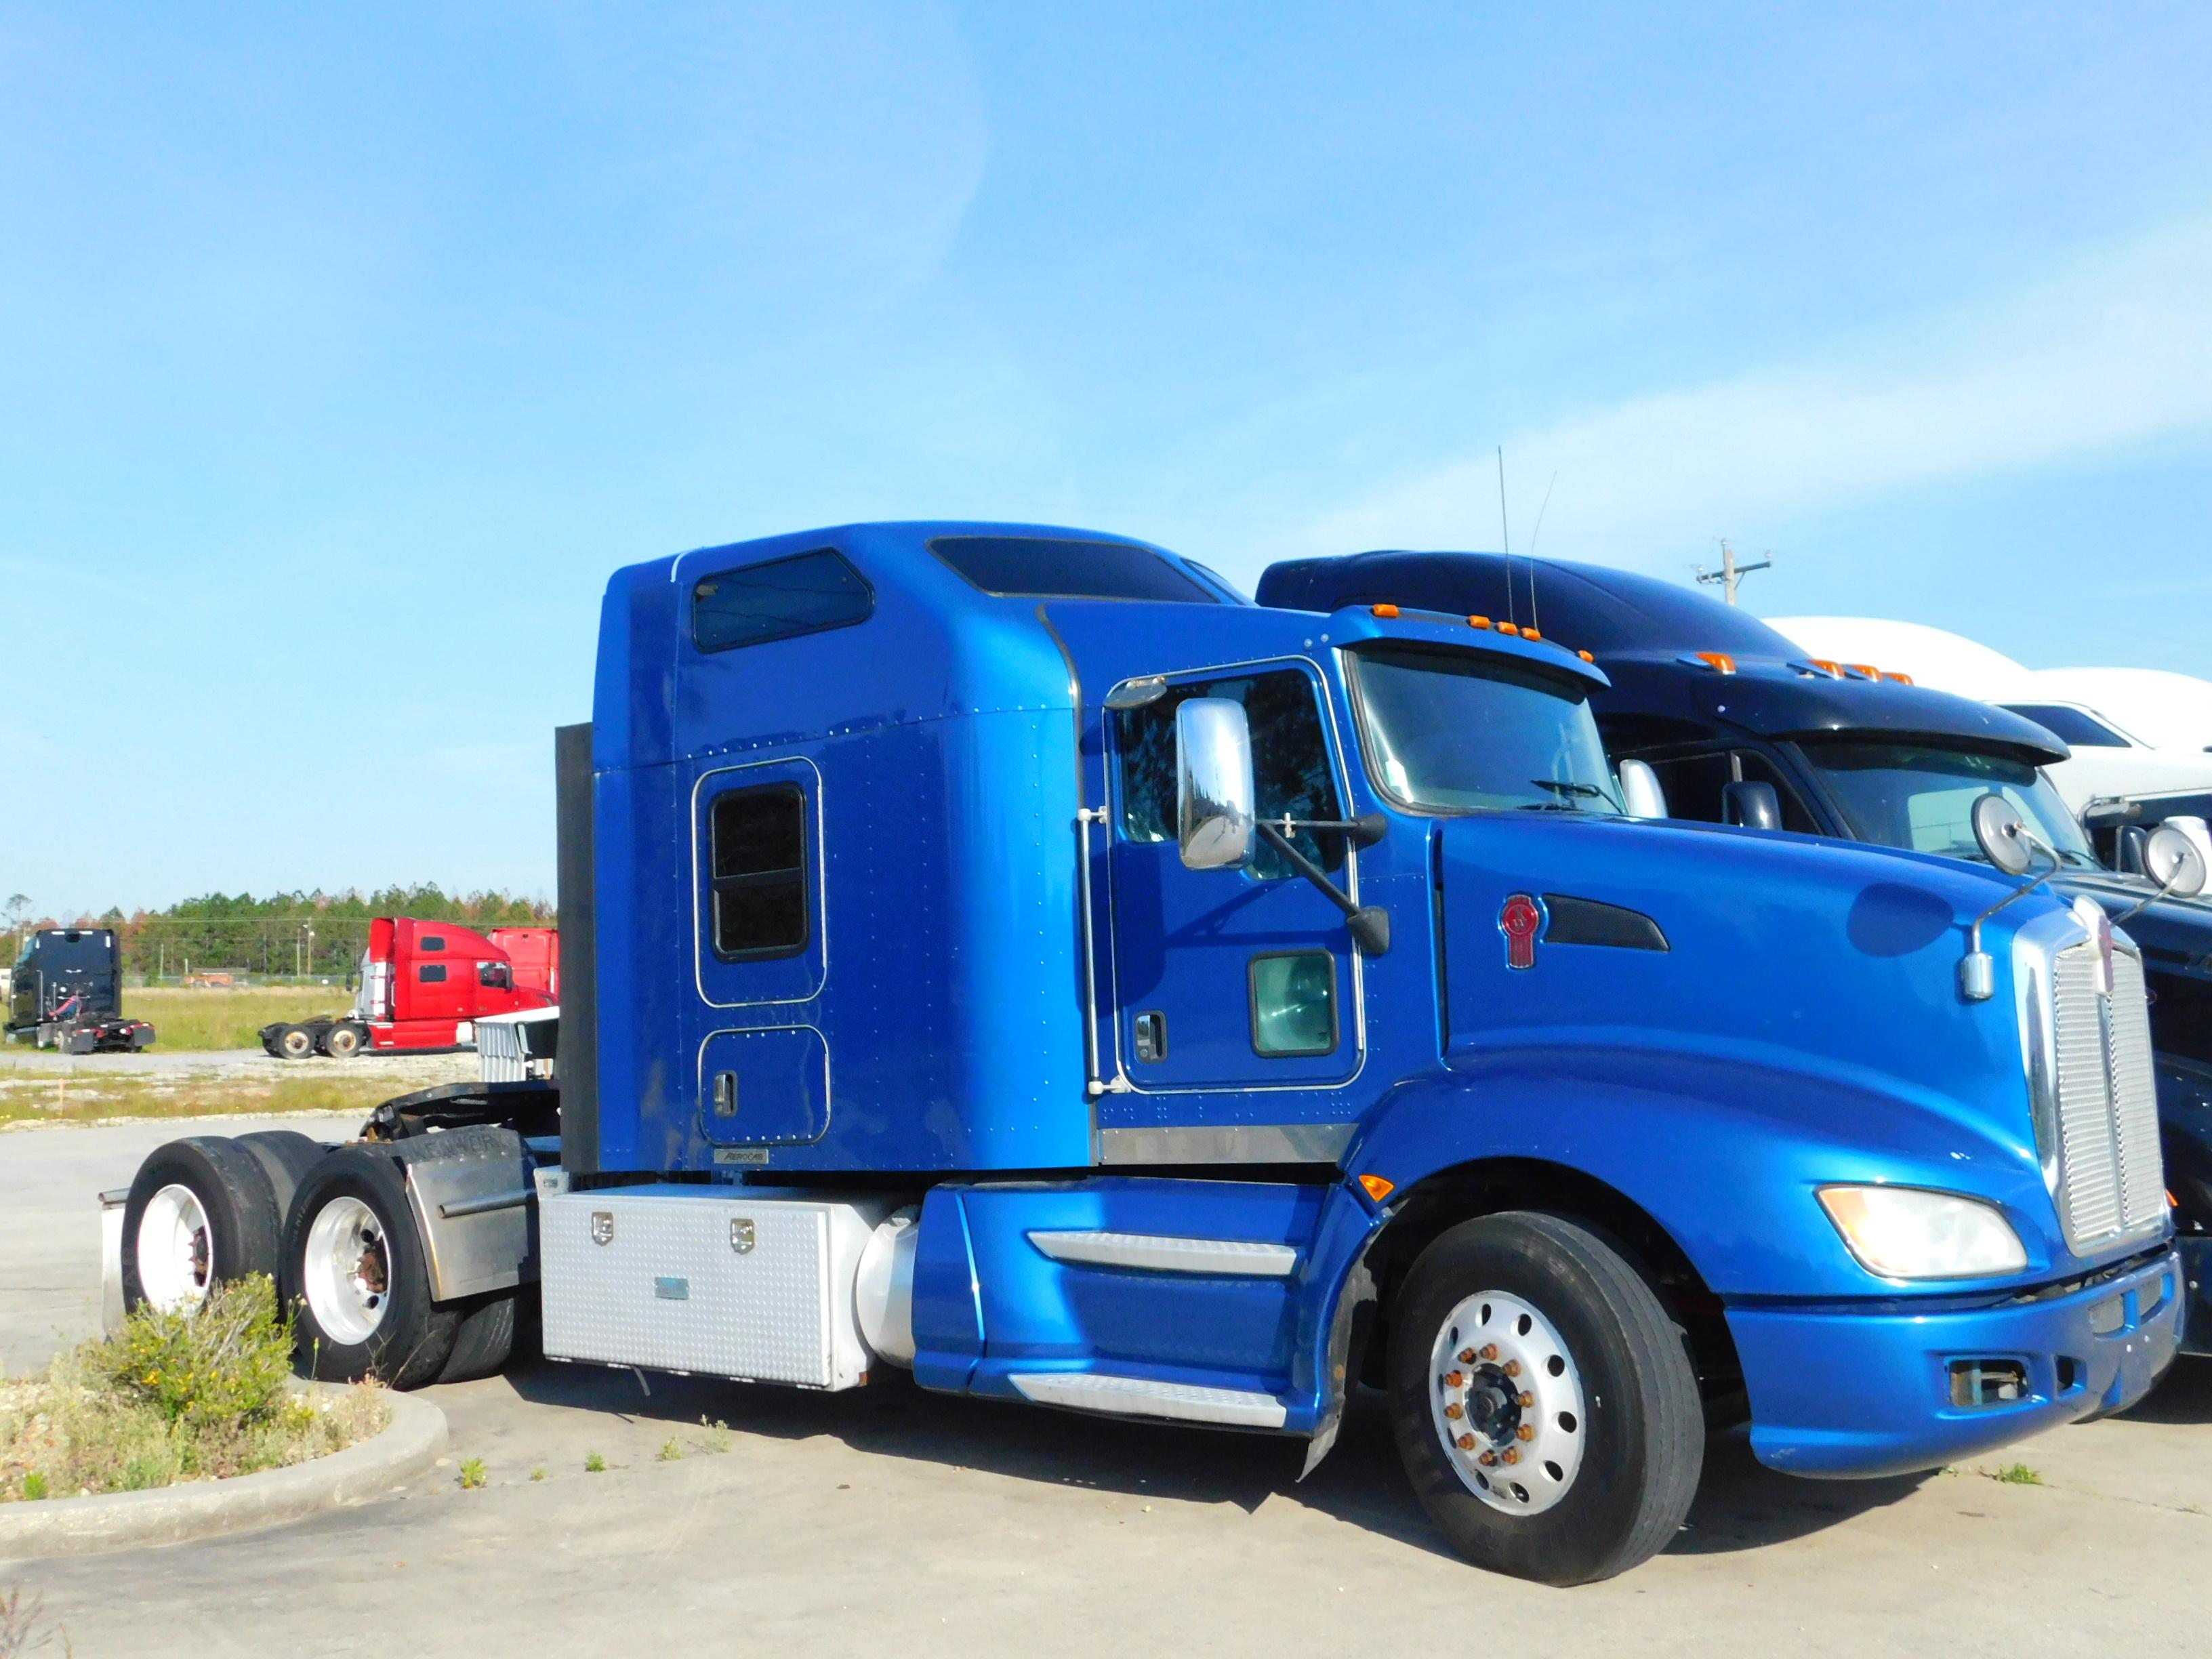 USED 2014 KENWORTH T660 SLEEPER TRUCK #180064